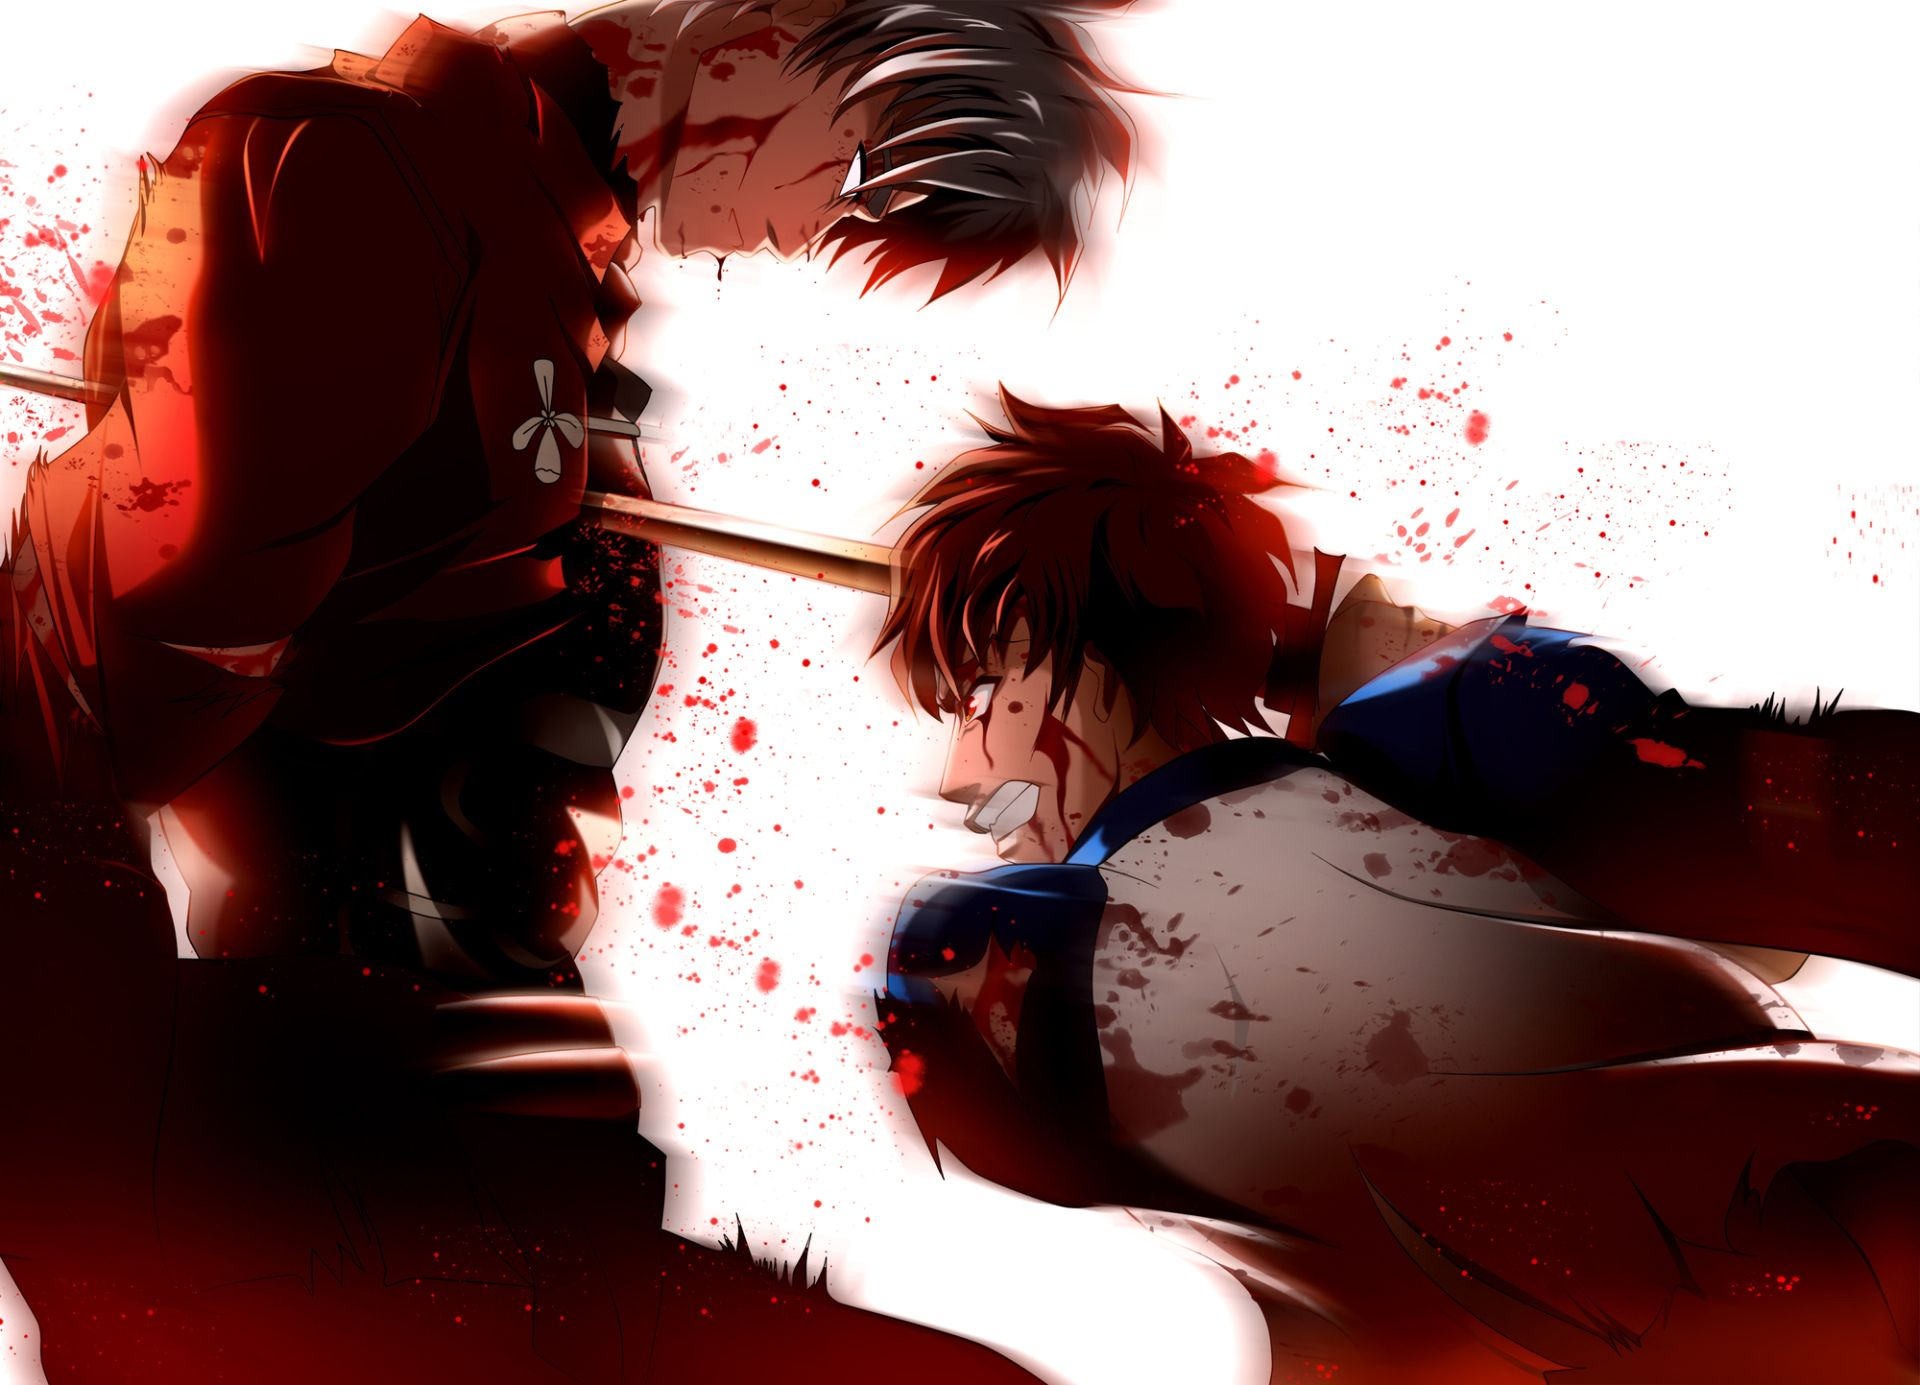 Anime Fate Stay Night Archer Shirou Emiya Wallpaper